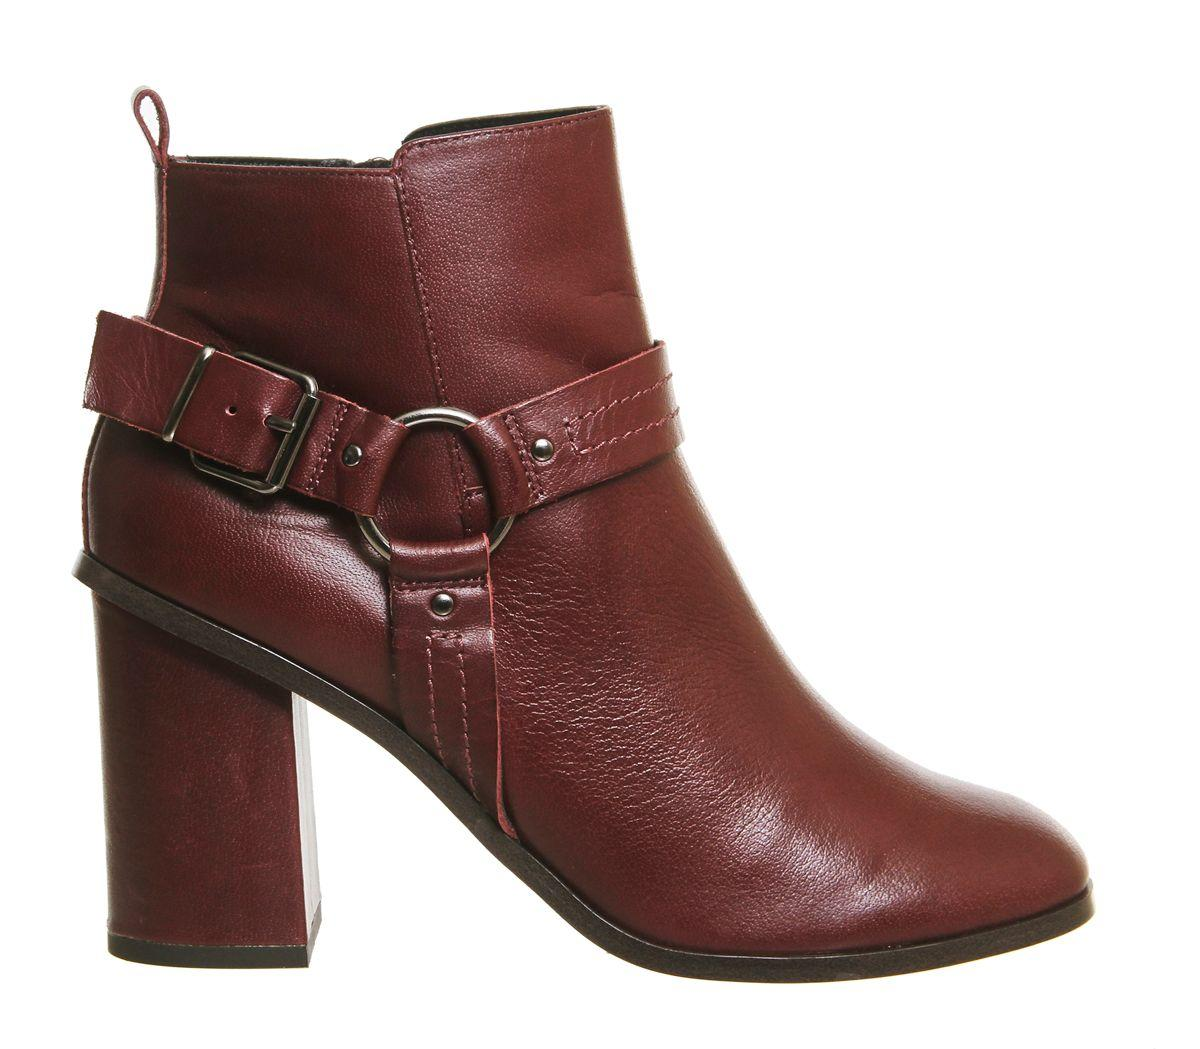 Office Leather Lana Smart Harness Boots in Burgundy (Brown)